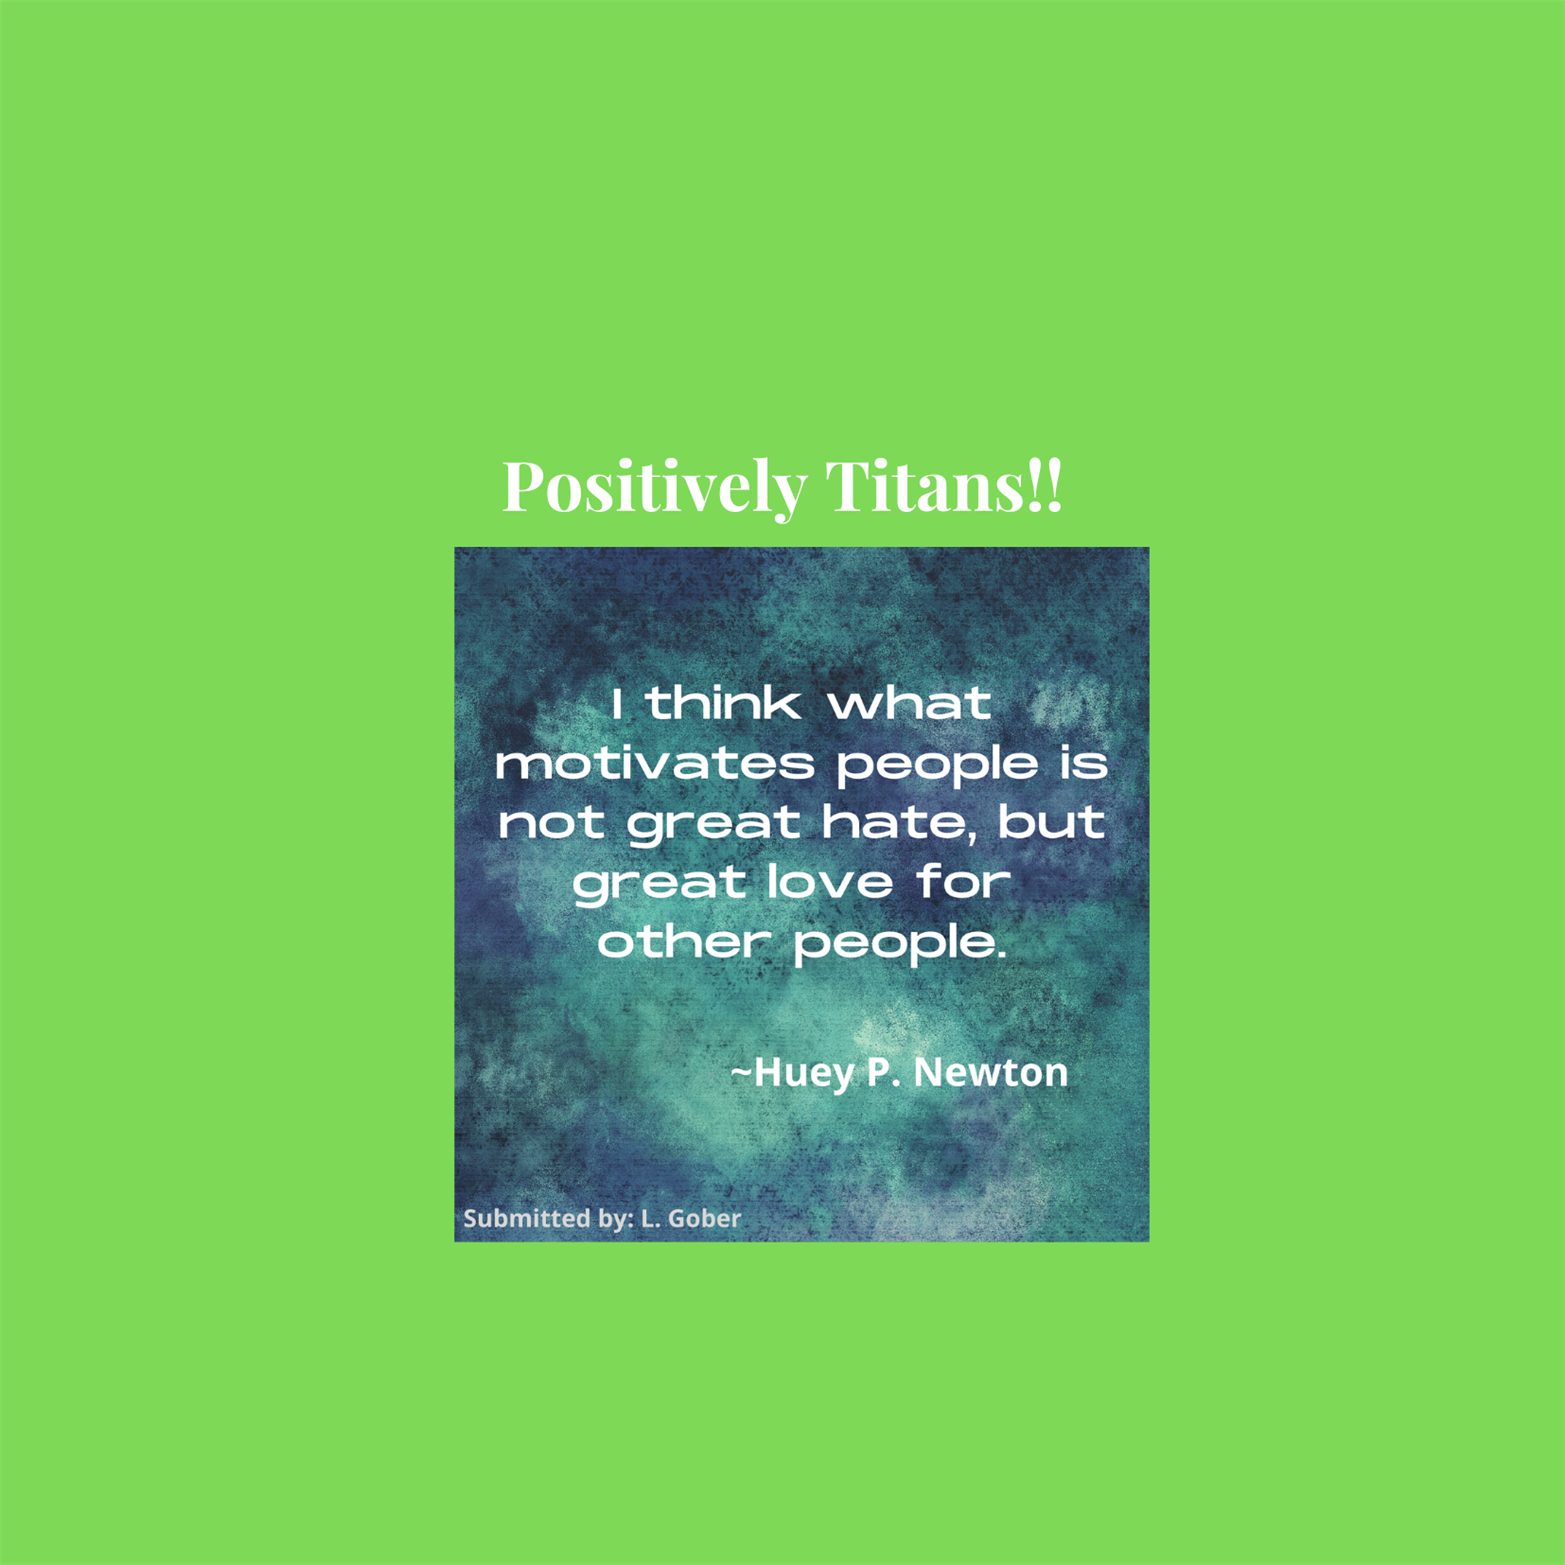 Positively Titans